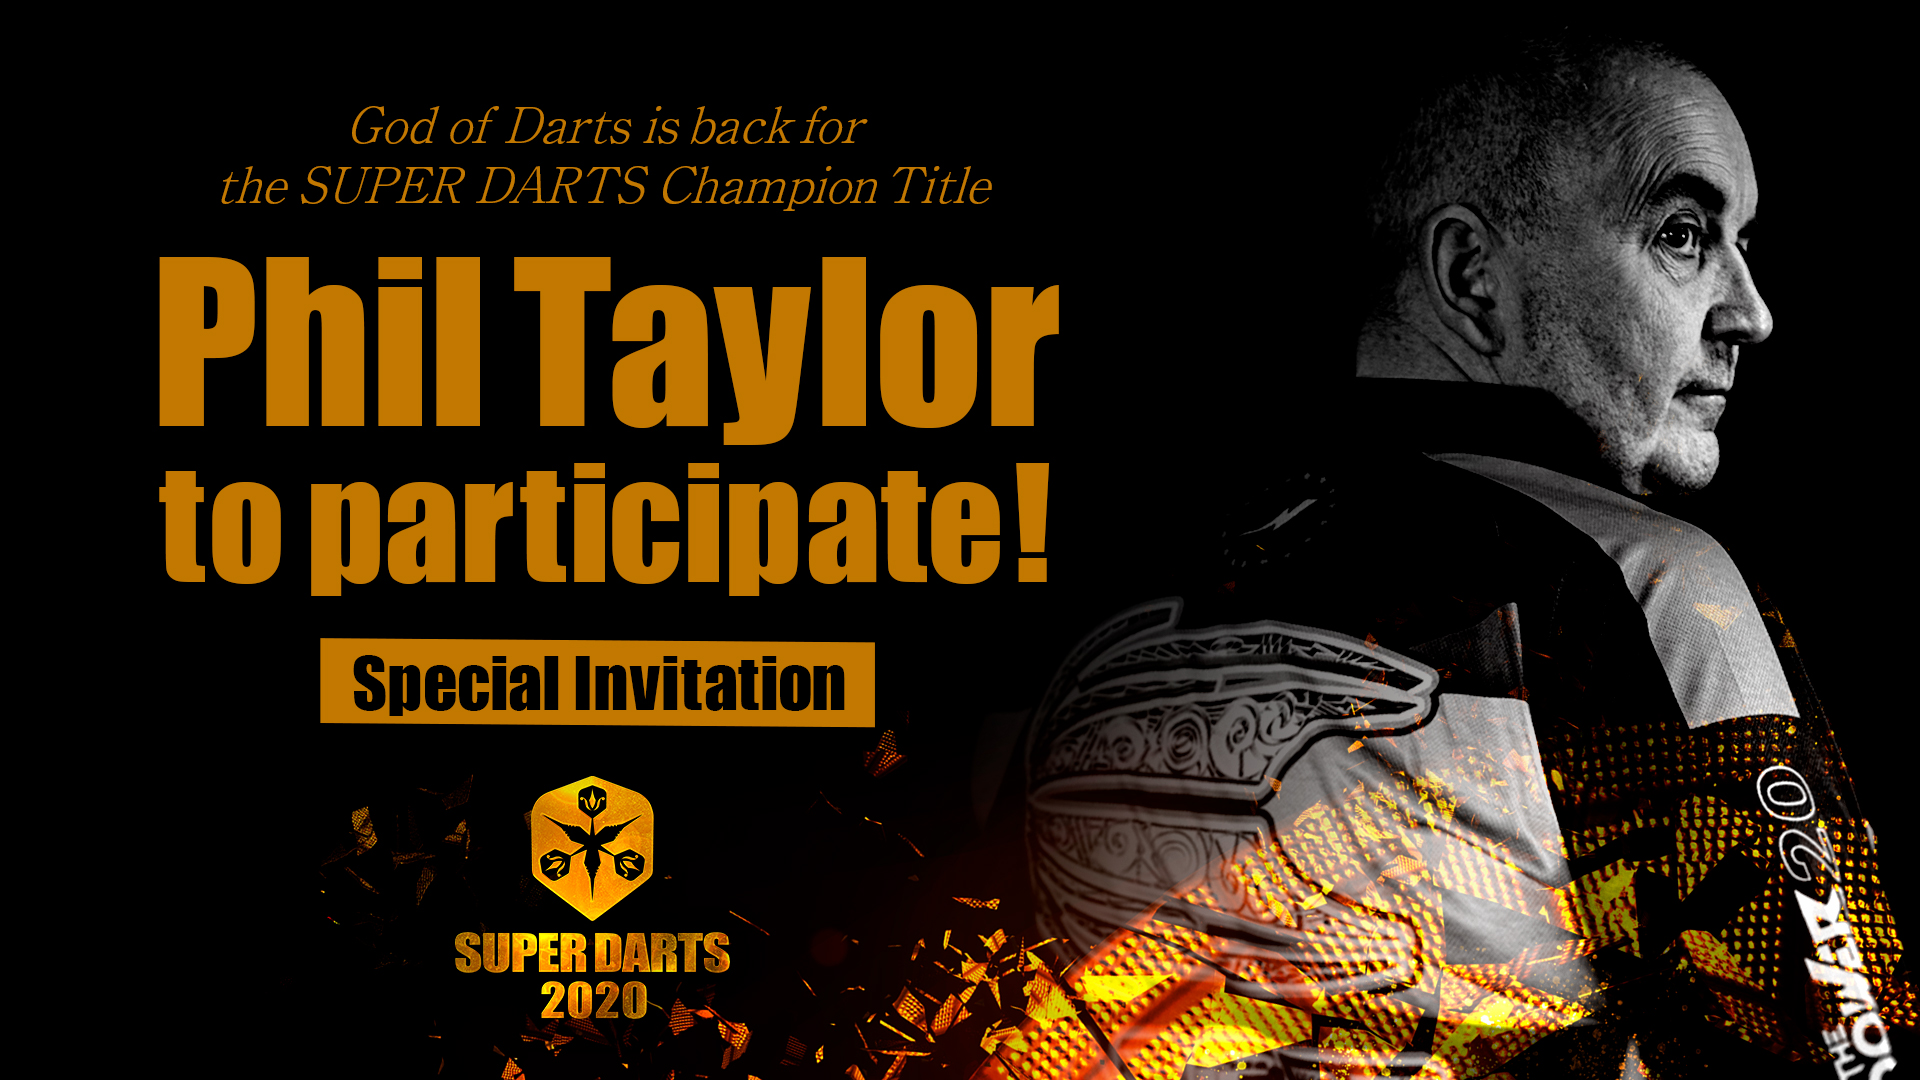 【Special Invitation】Phil Taylor to participate!